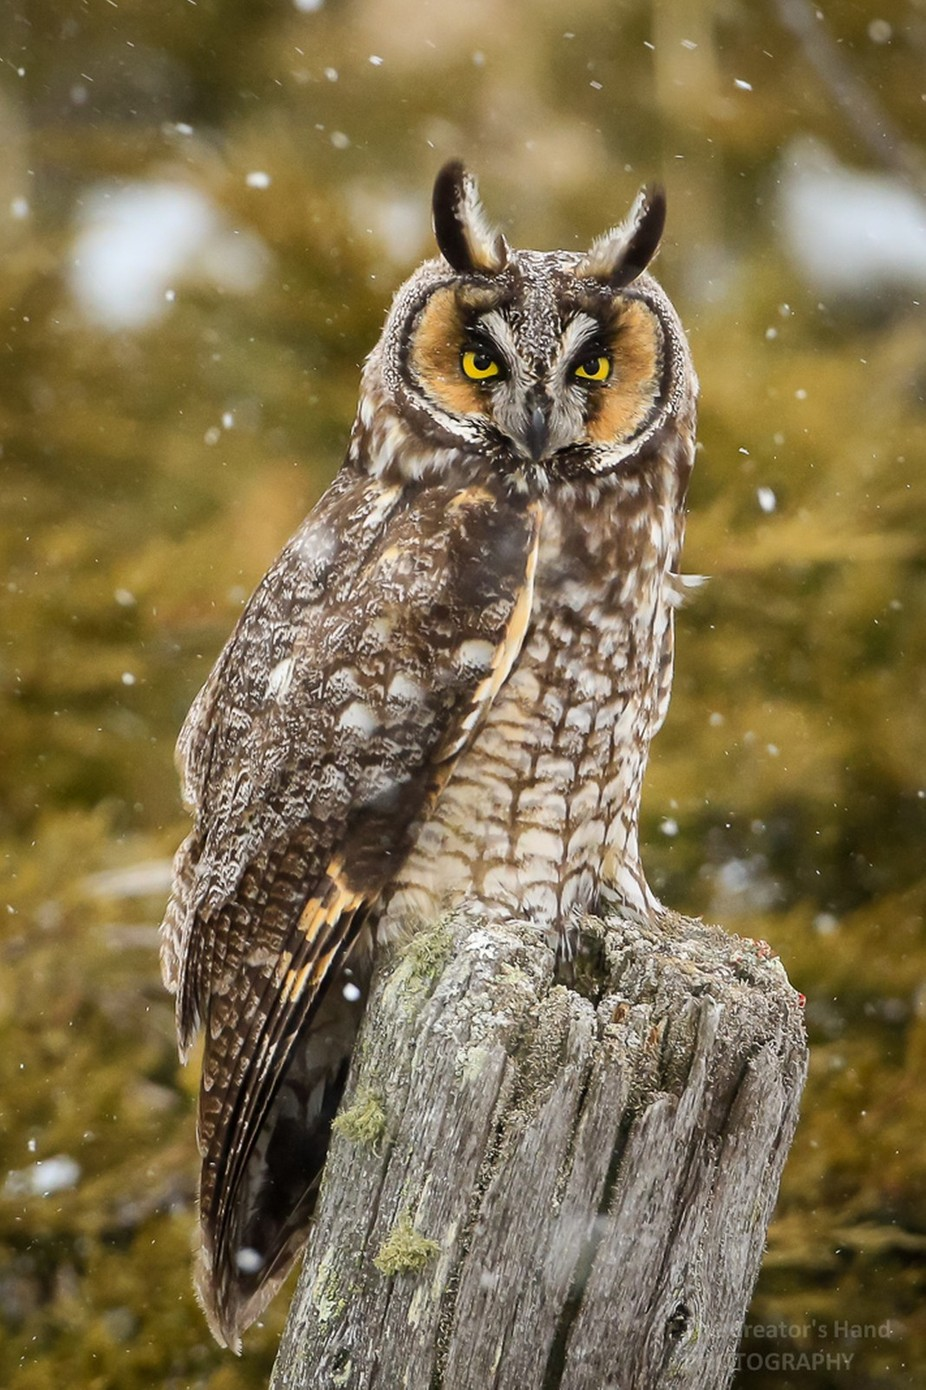 Long-eared Owl-4074G by CreatorsHand - My Best Shot Photo Contest Vol 3